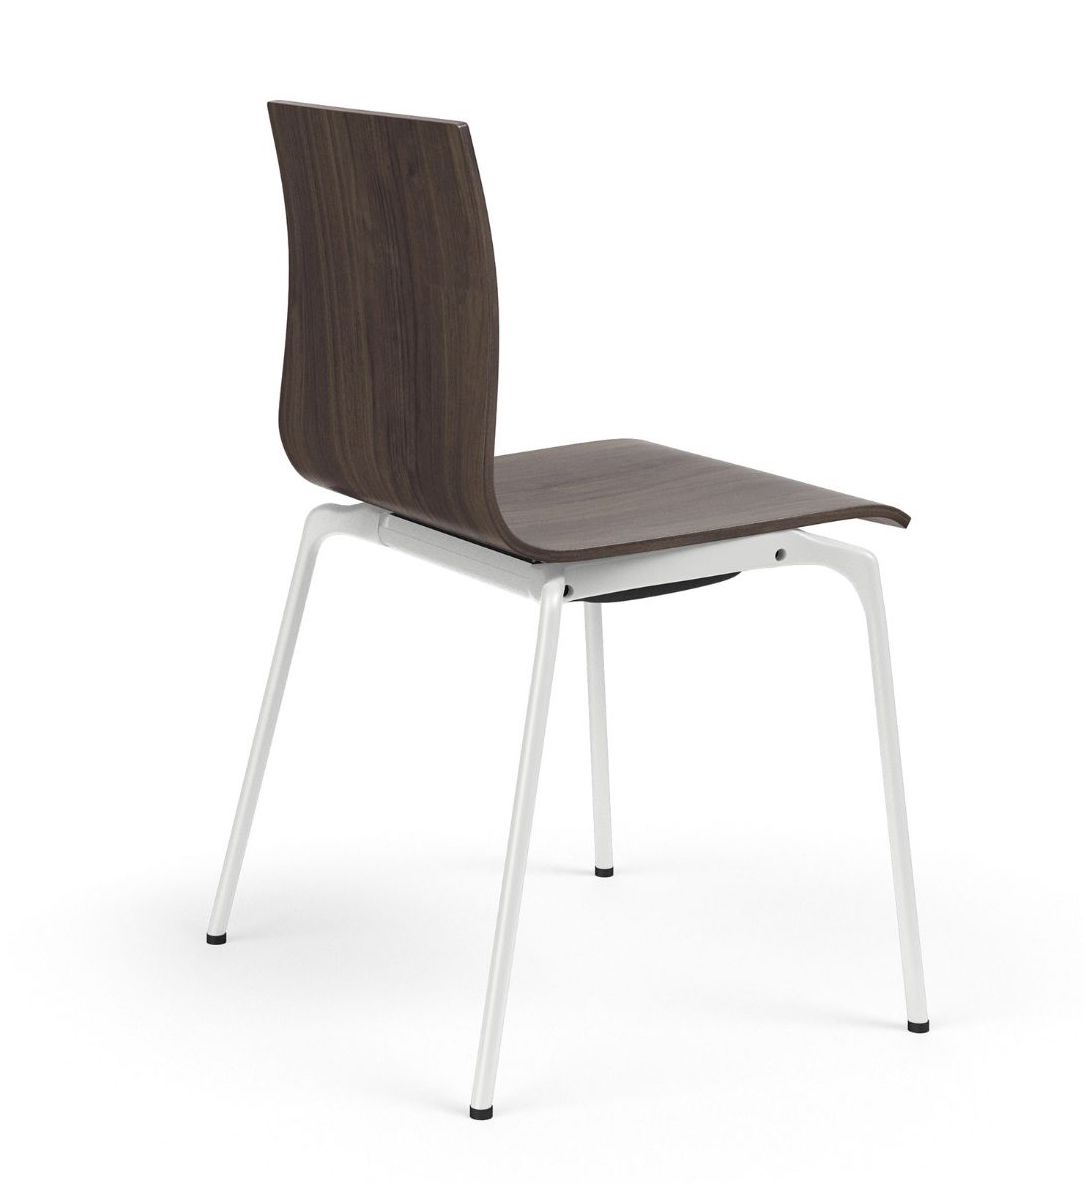 voz guest chair - back view